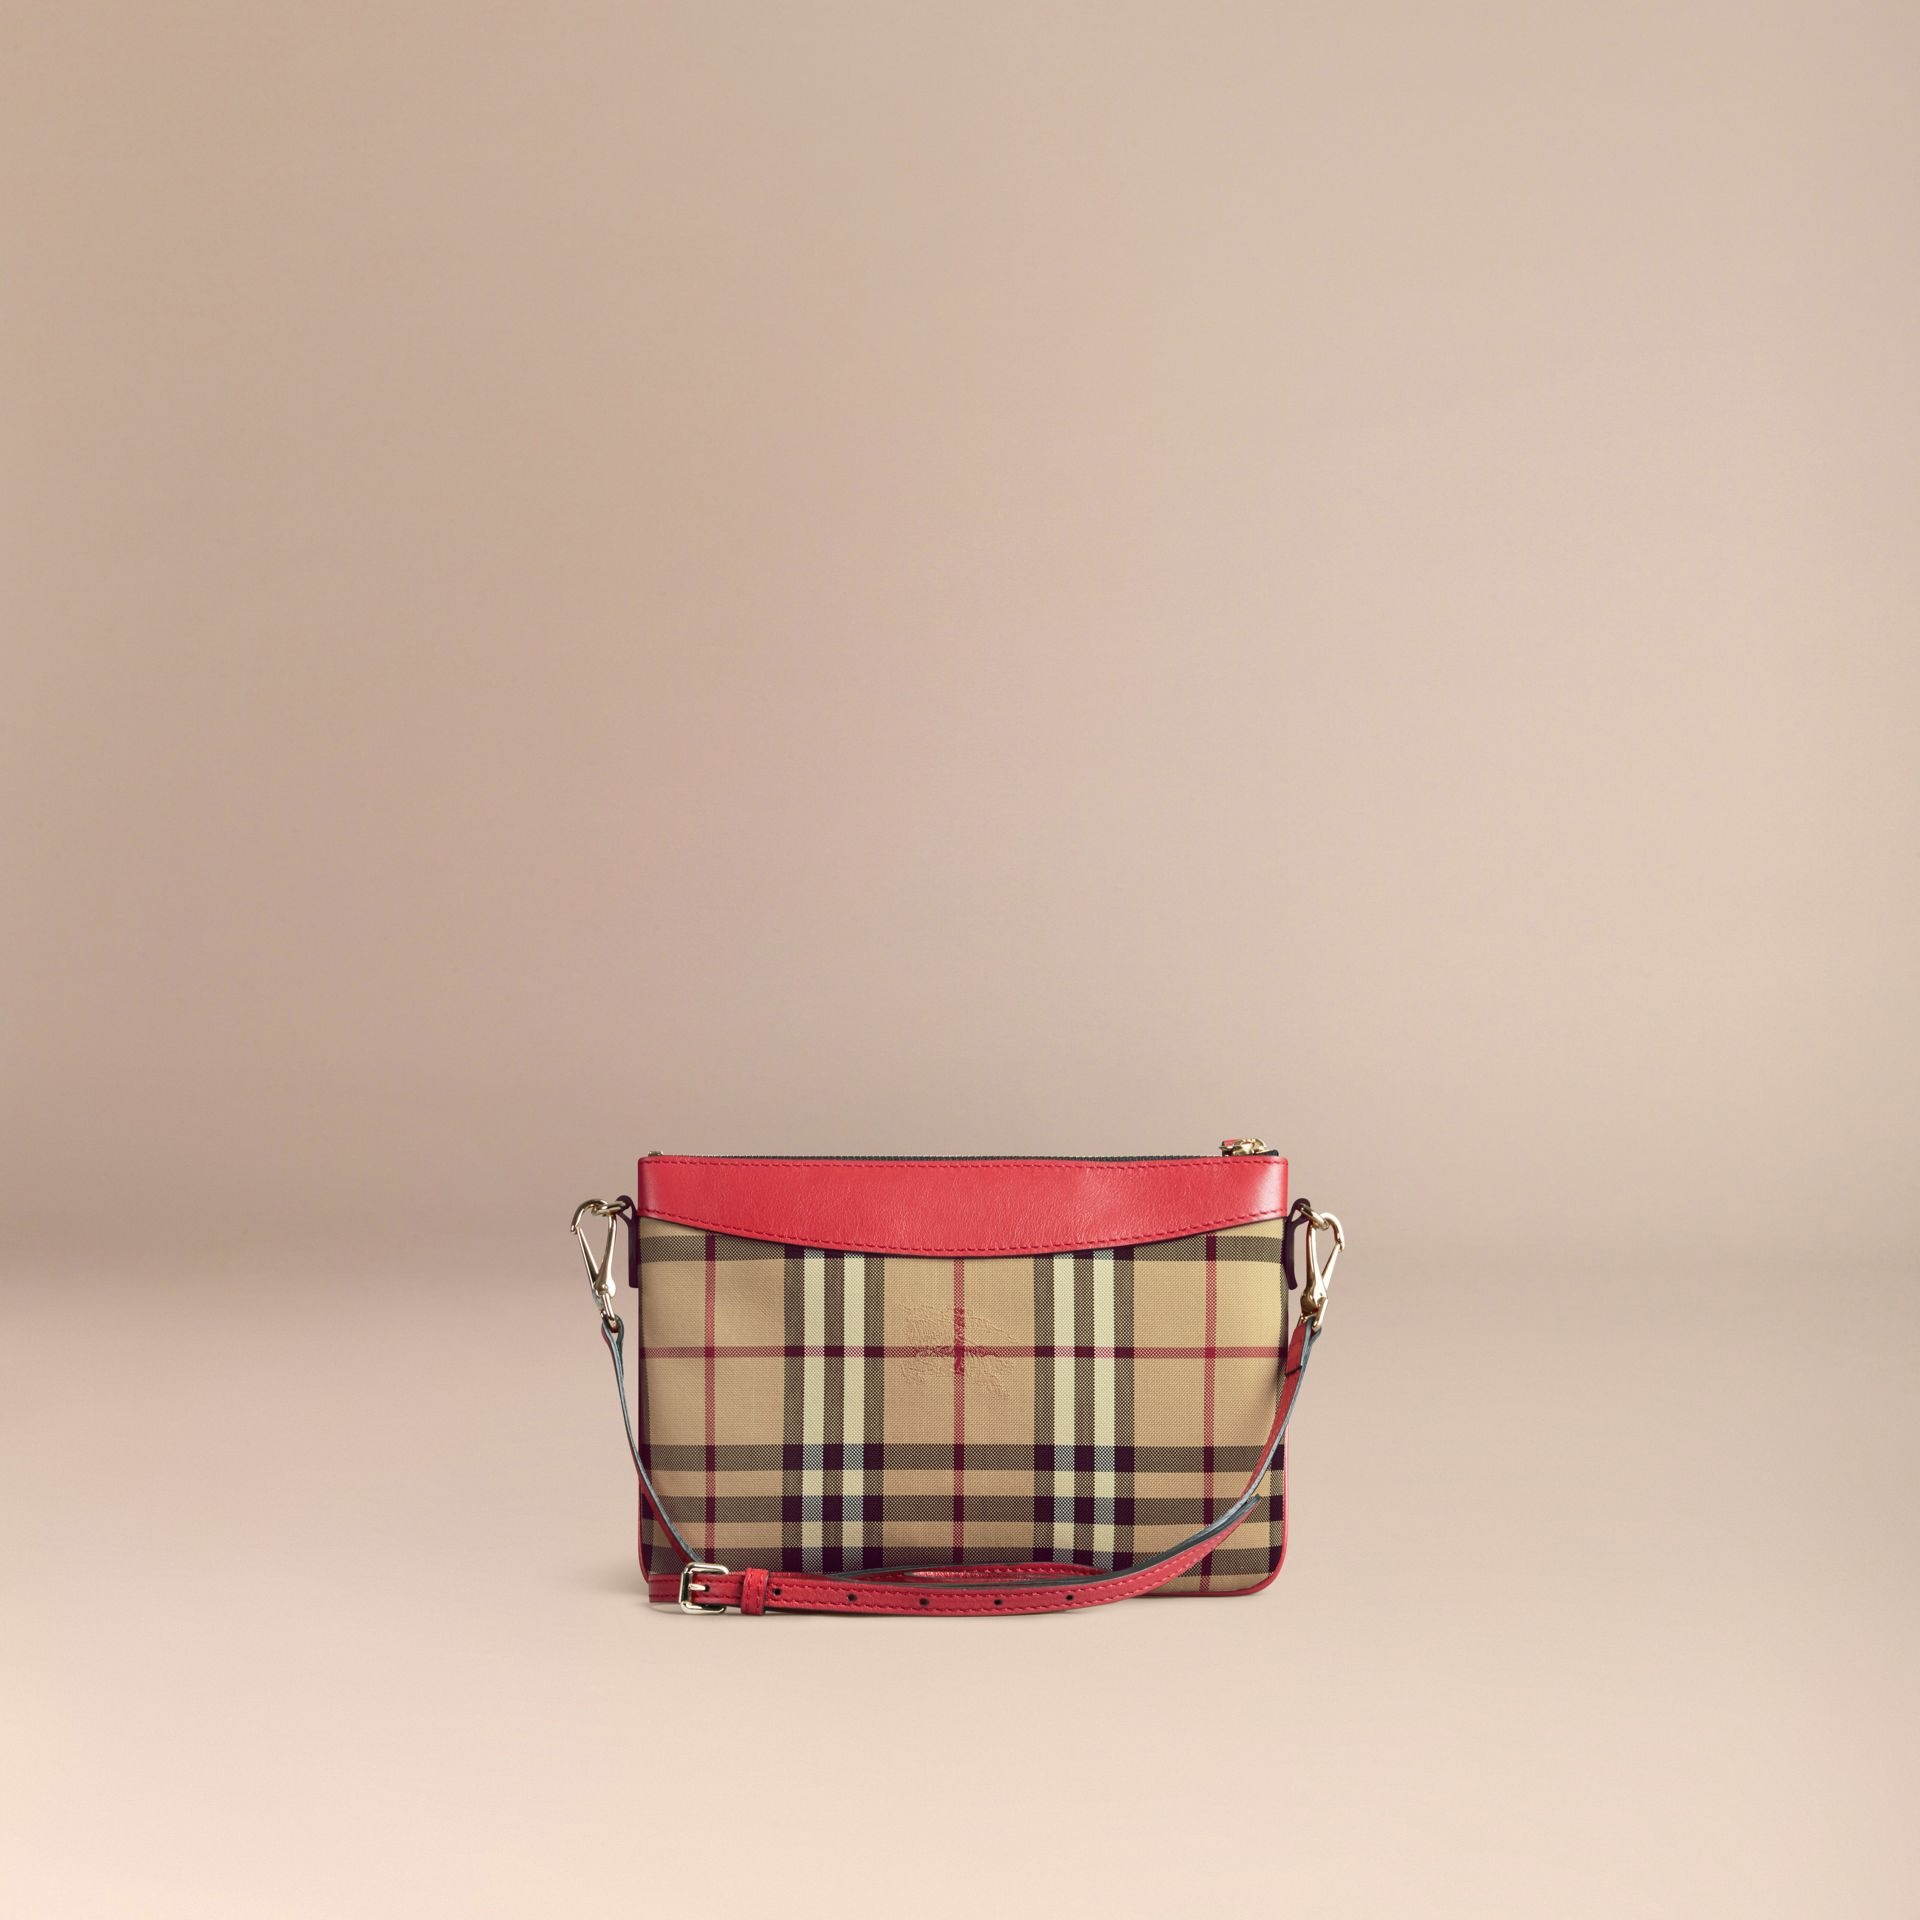 Parade red Horseferry Check and Leather Clutch Bag Parade Red - gallery image 5